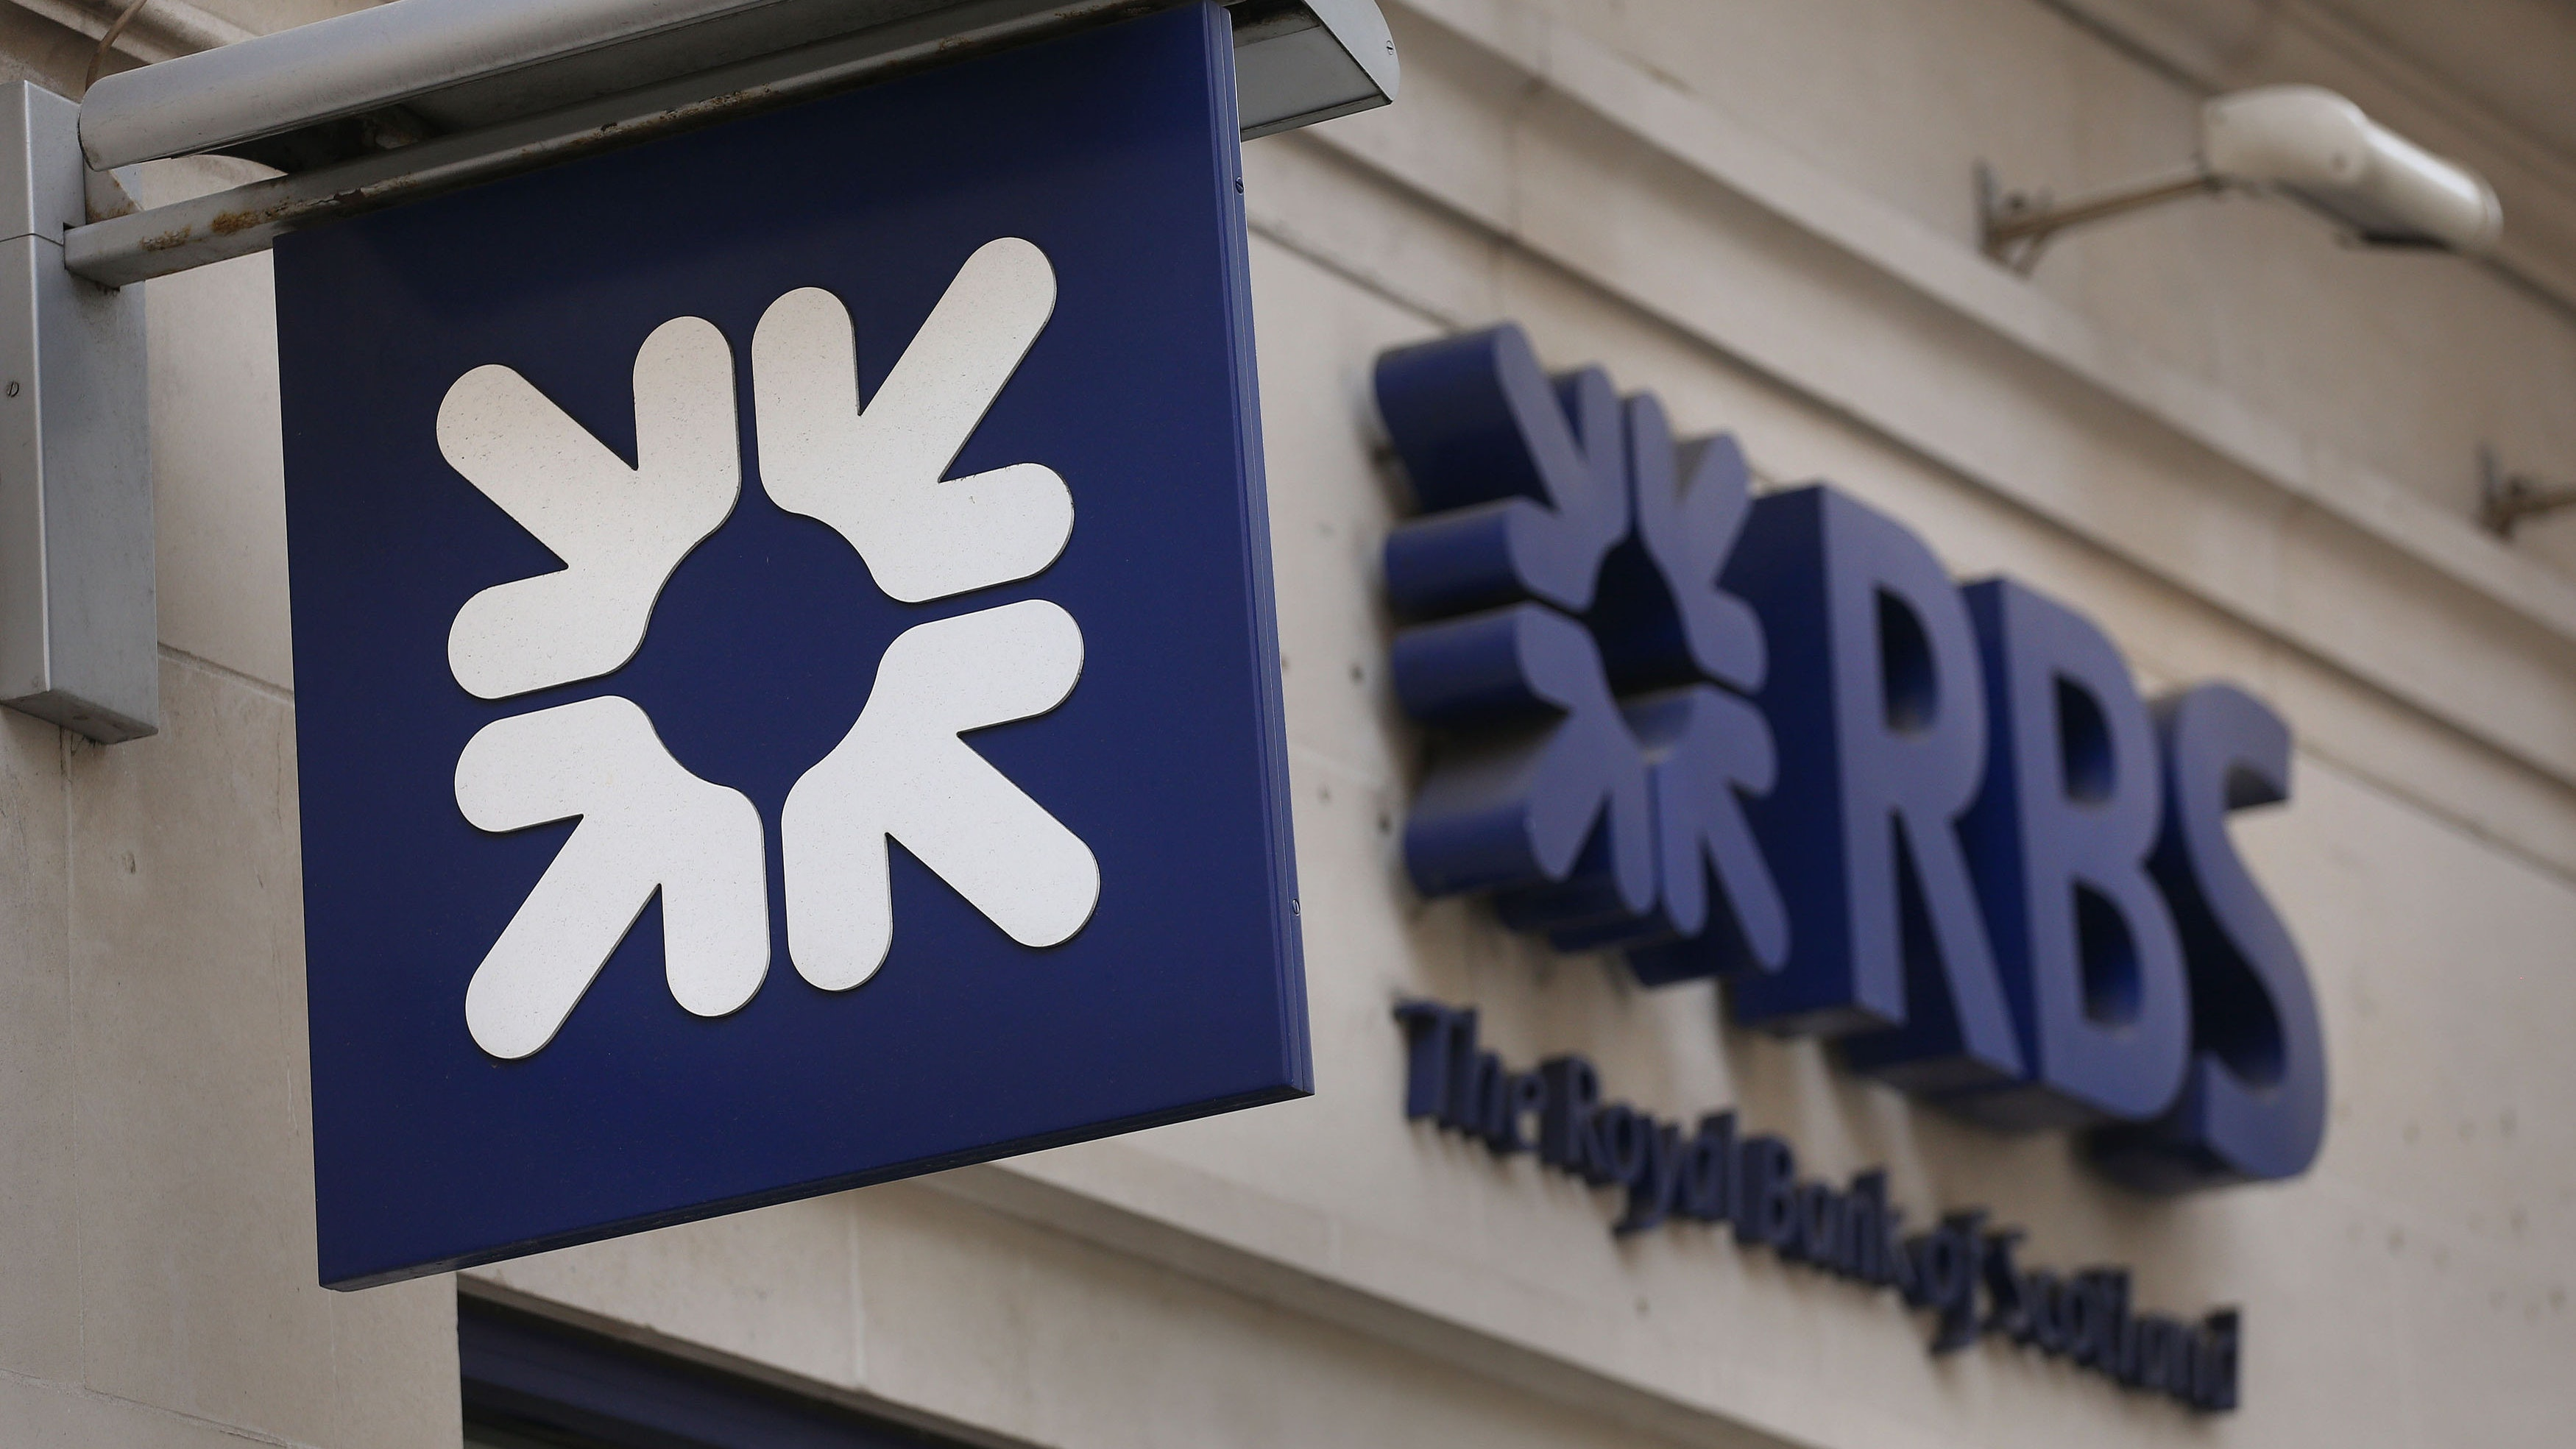 rbs abn merger The royal bank of scotland plc  abn amro bank nv  a proposed cross-border merger of rbs ii bv into rbs plc (the.